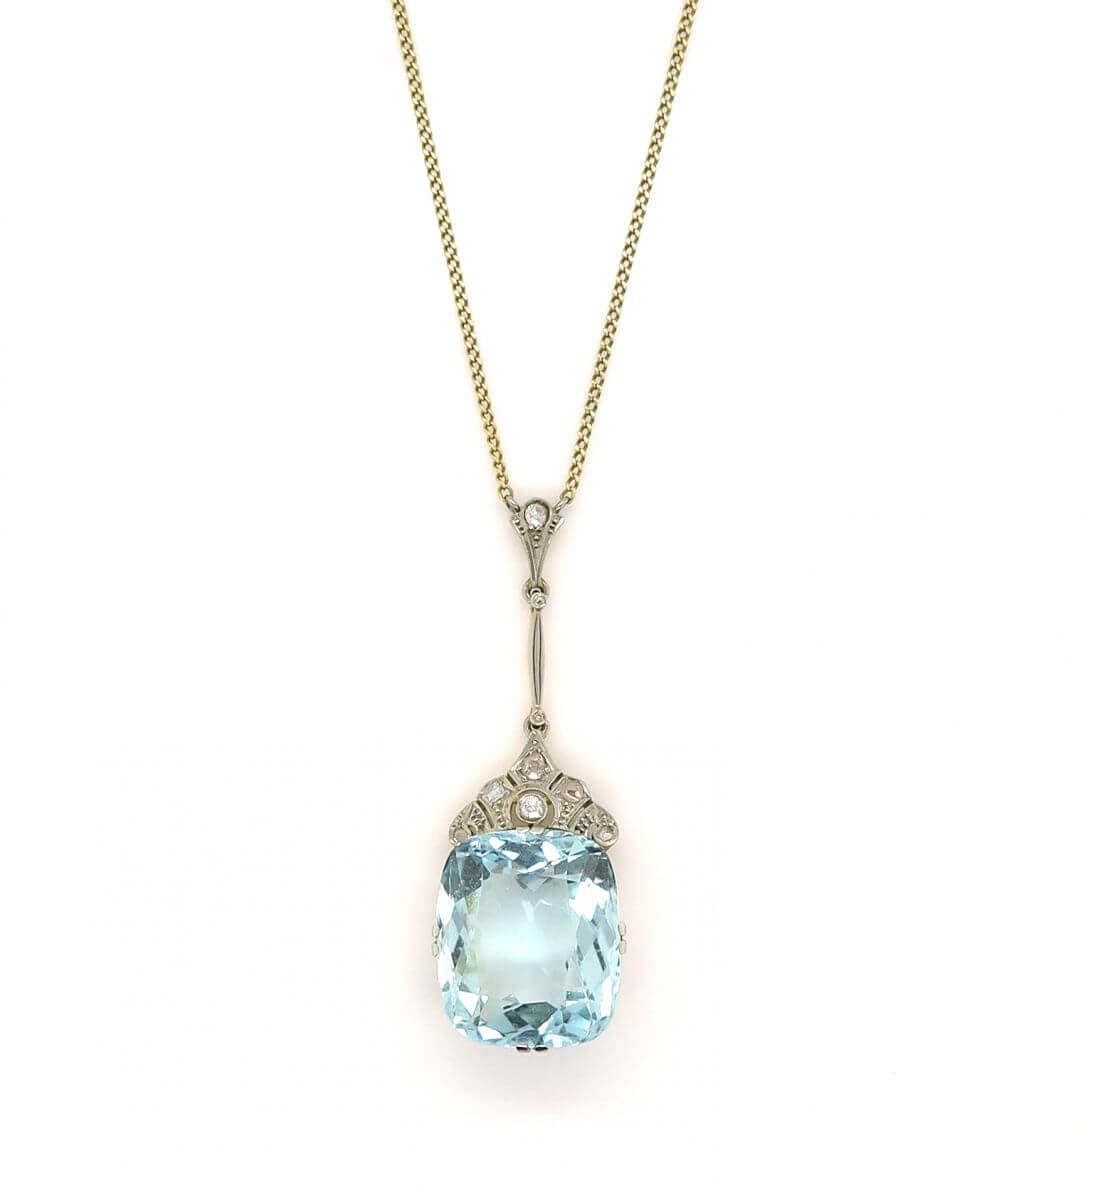 Platinum & 14Ct Yellow Gold 1920S Art Deco Aquamarine In Most Current Sapphire, Aquamarine And Diamond Necklaces (View 21 of 25)